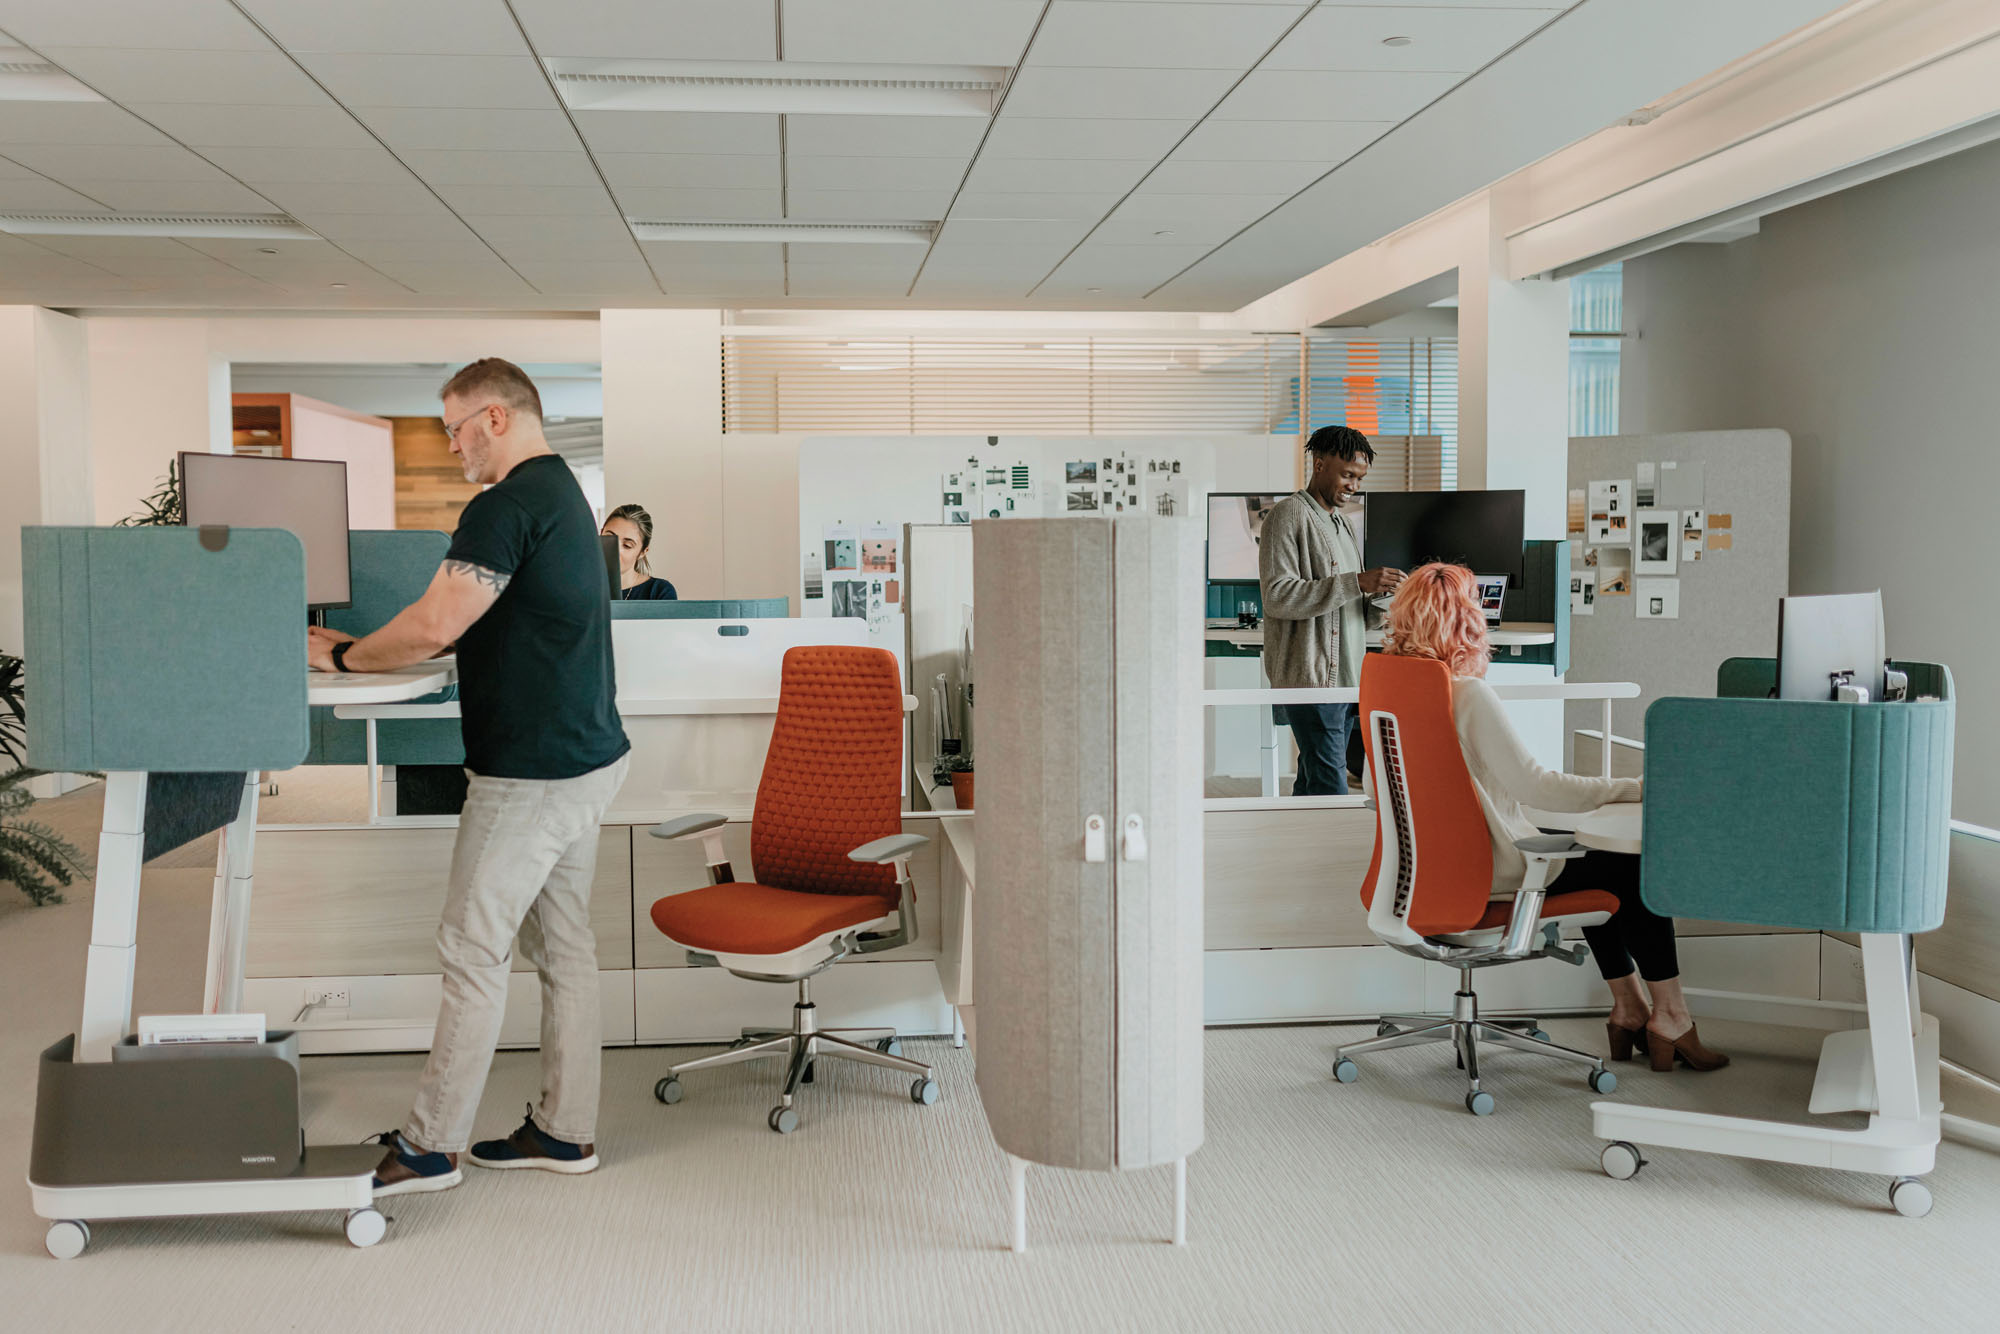 office interior with workstations